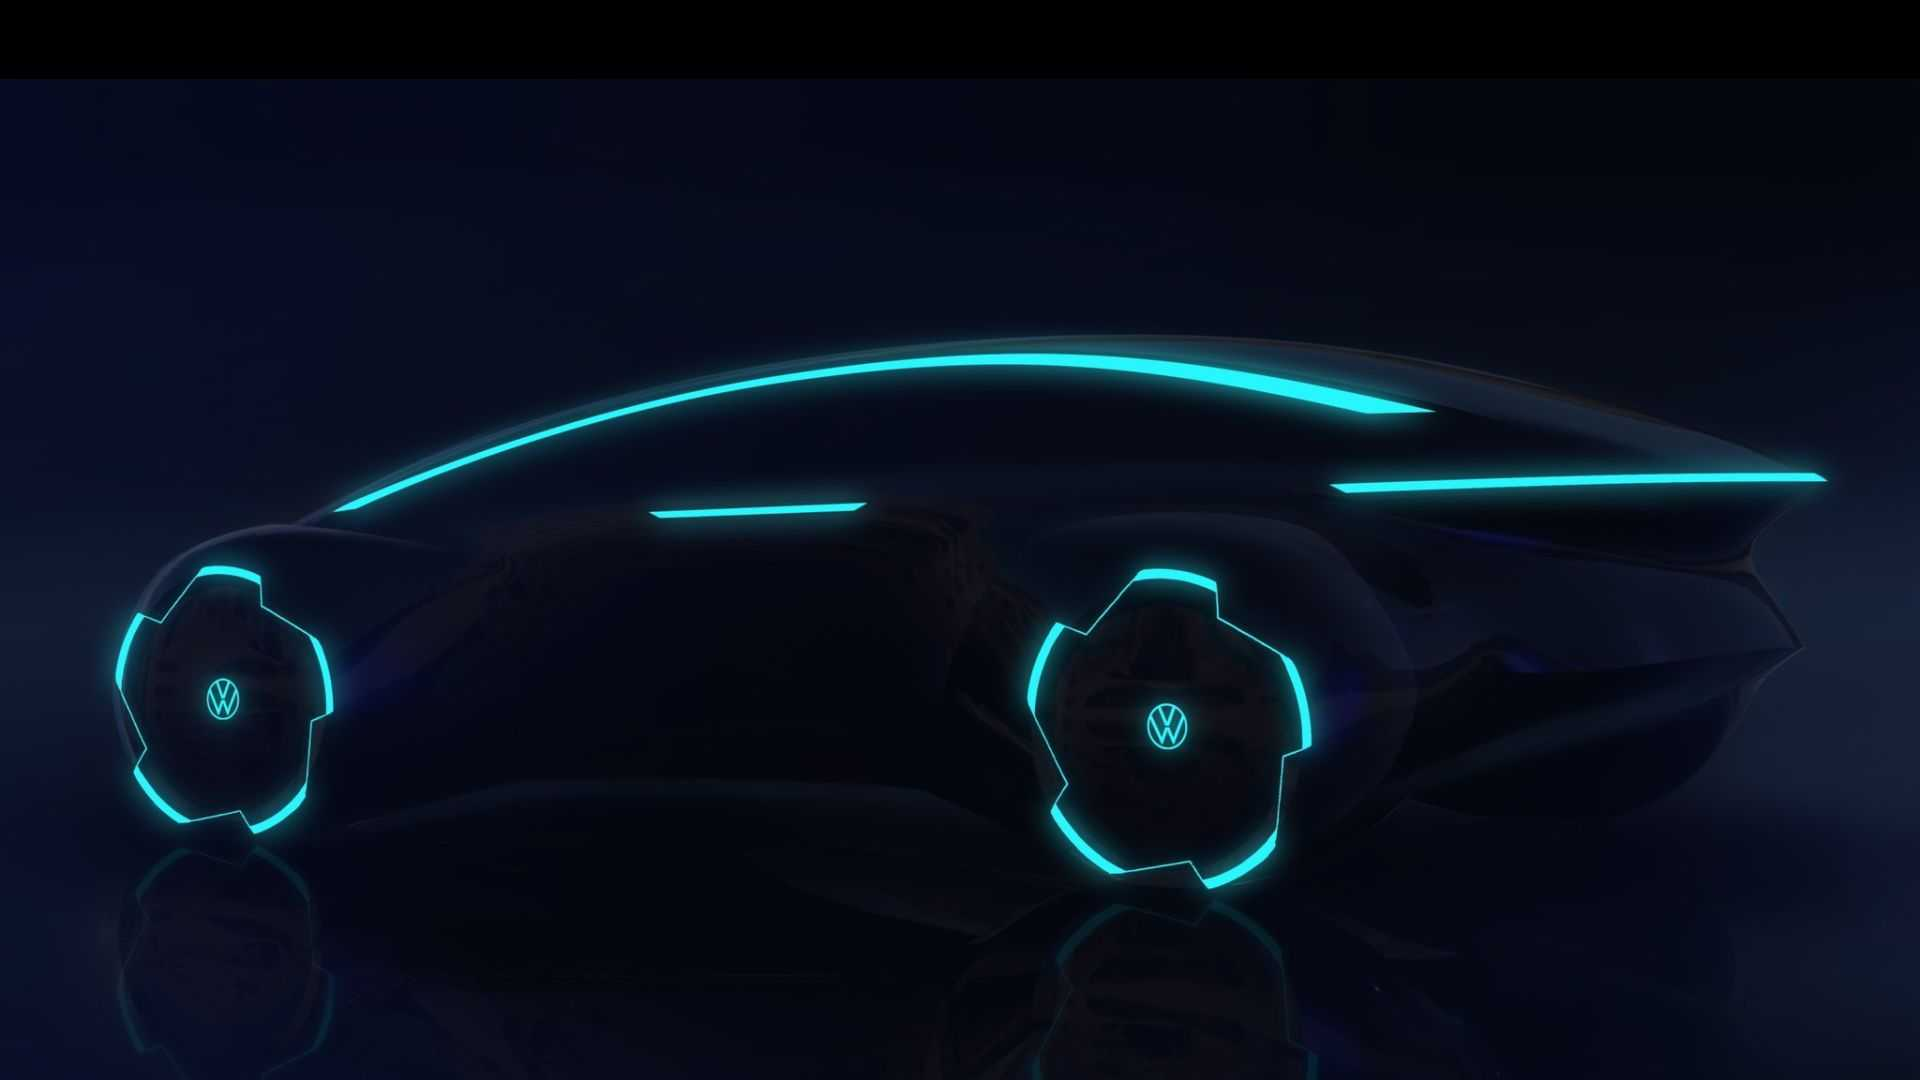 Volkswagen's Project Trinity May Have Been Teased Again By Herbert Diess